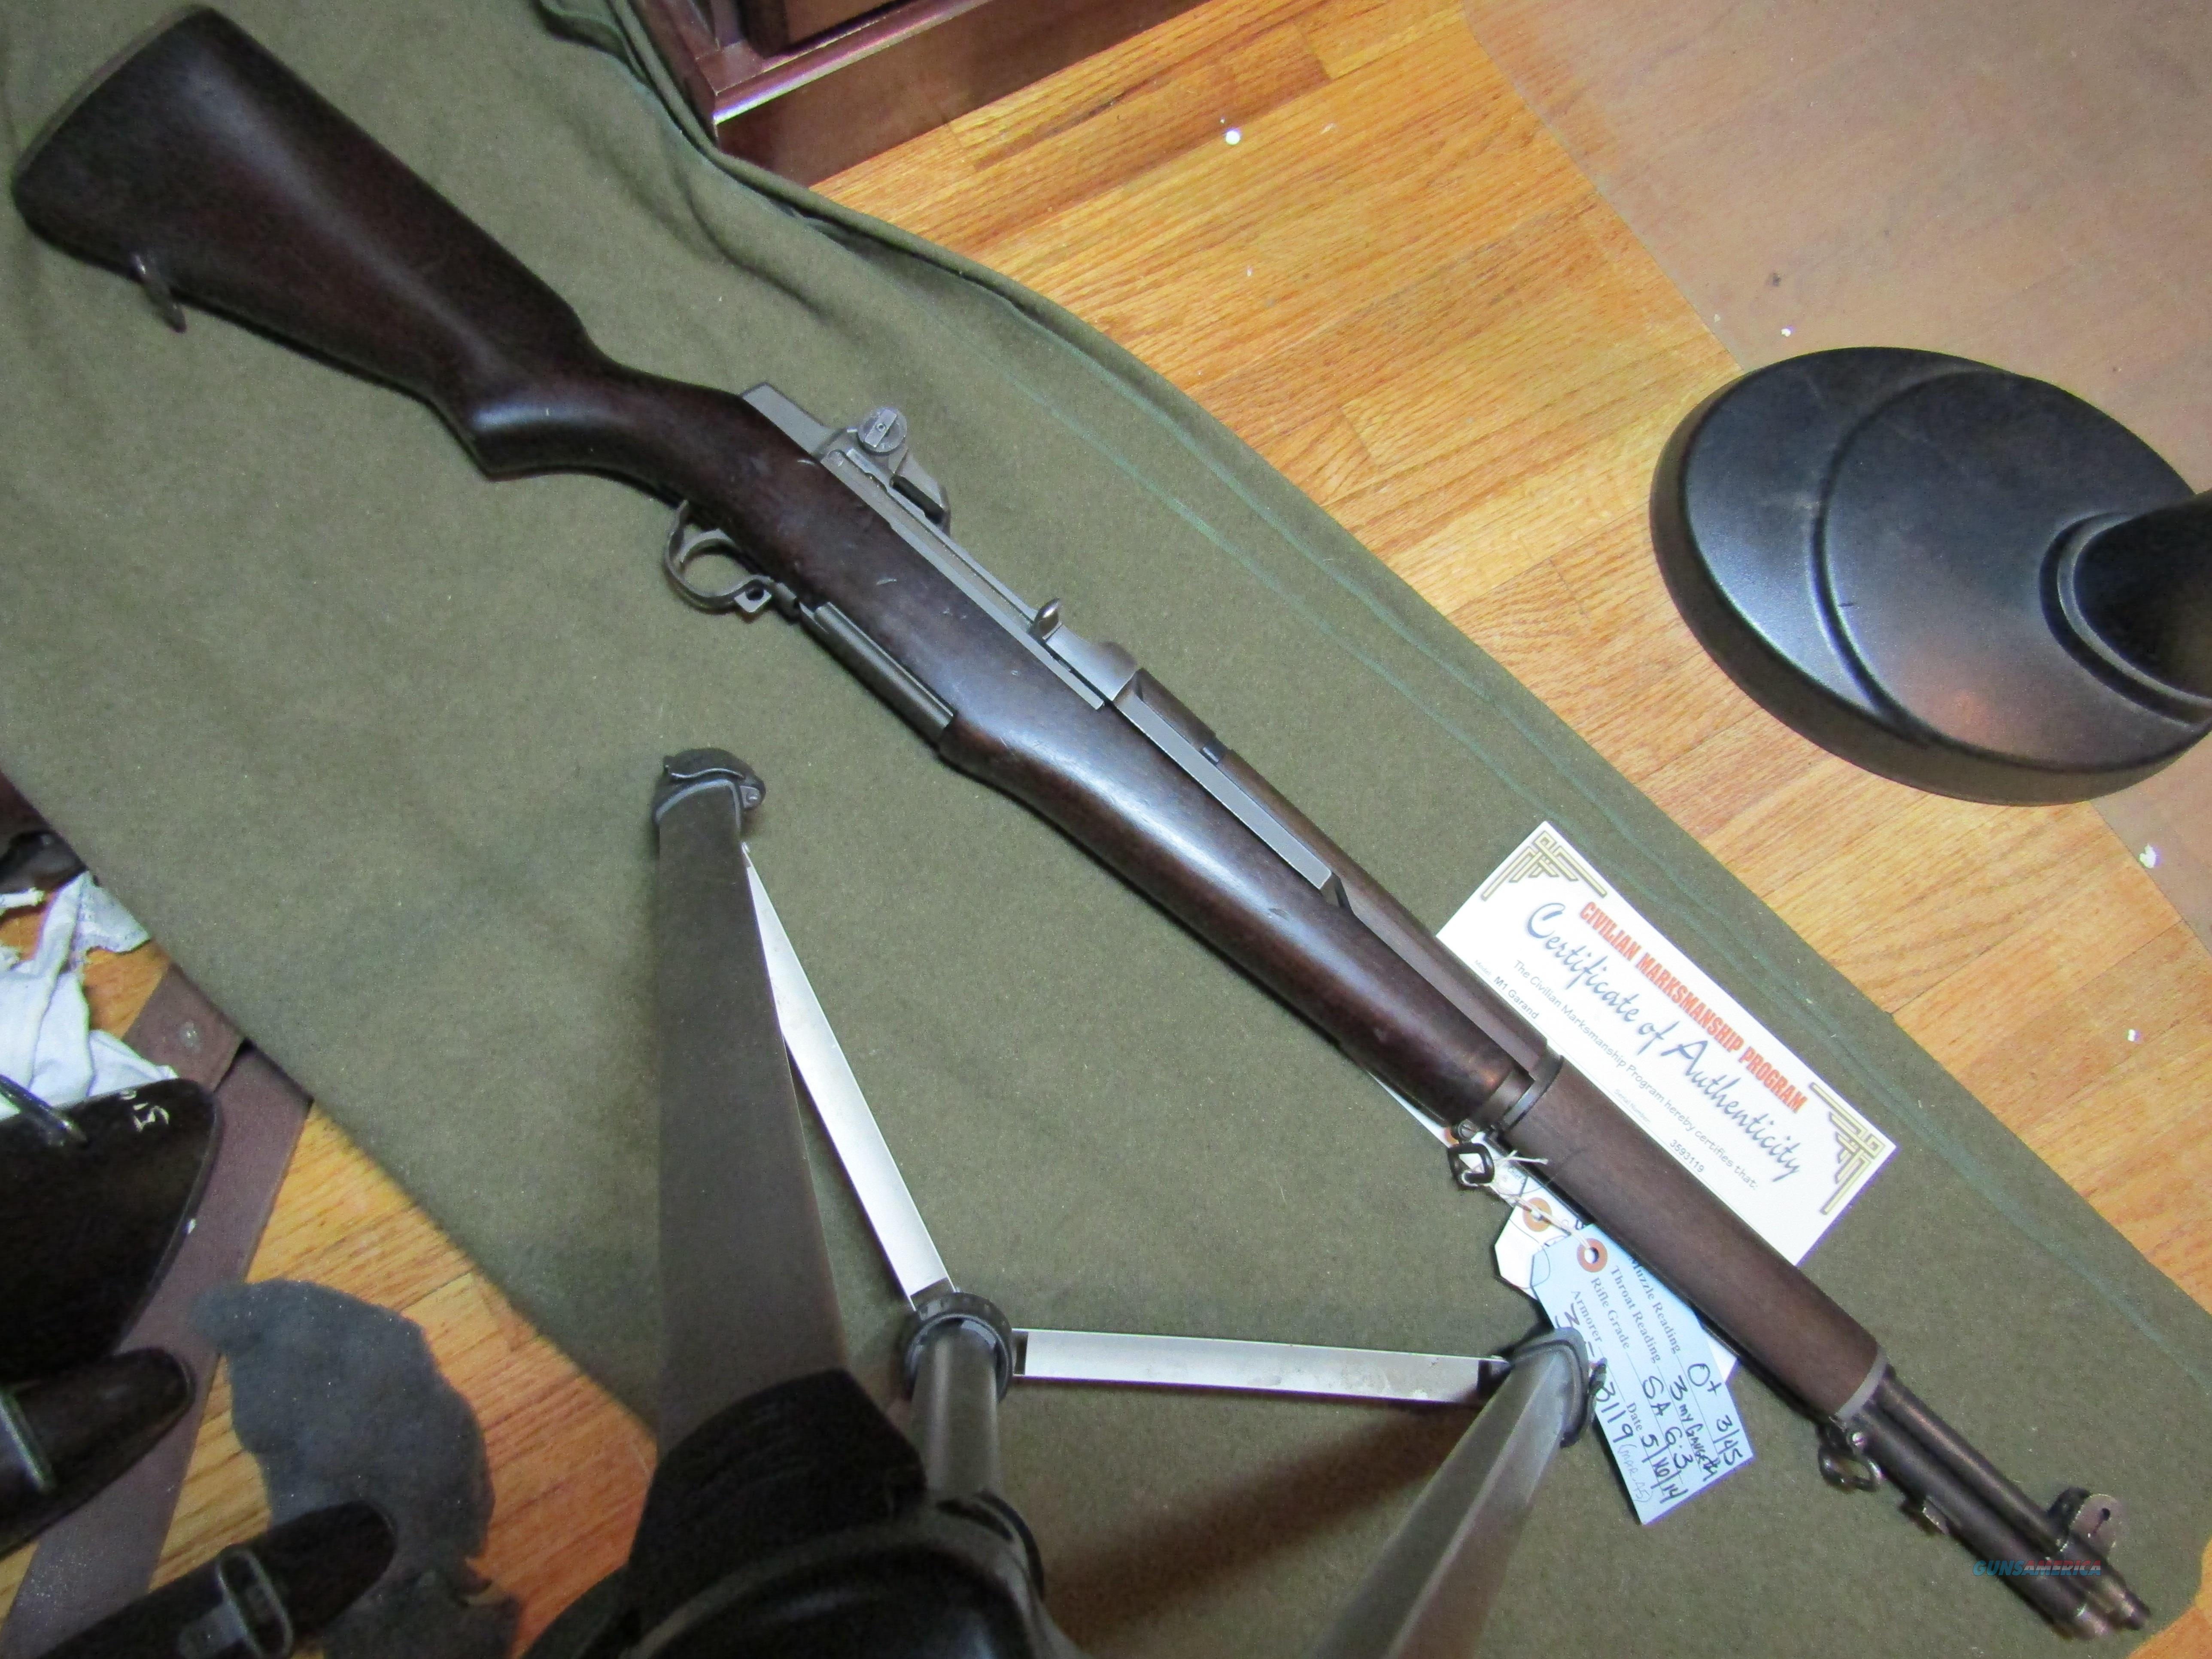 Correct parts M1 Garand Rifle, WWII  Guns > Rifles > Military Misc. Rifles US > M1 Garand